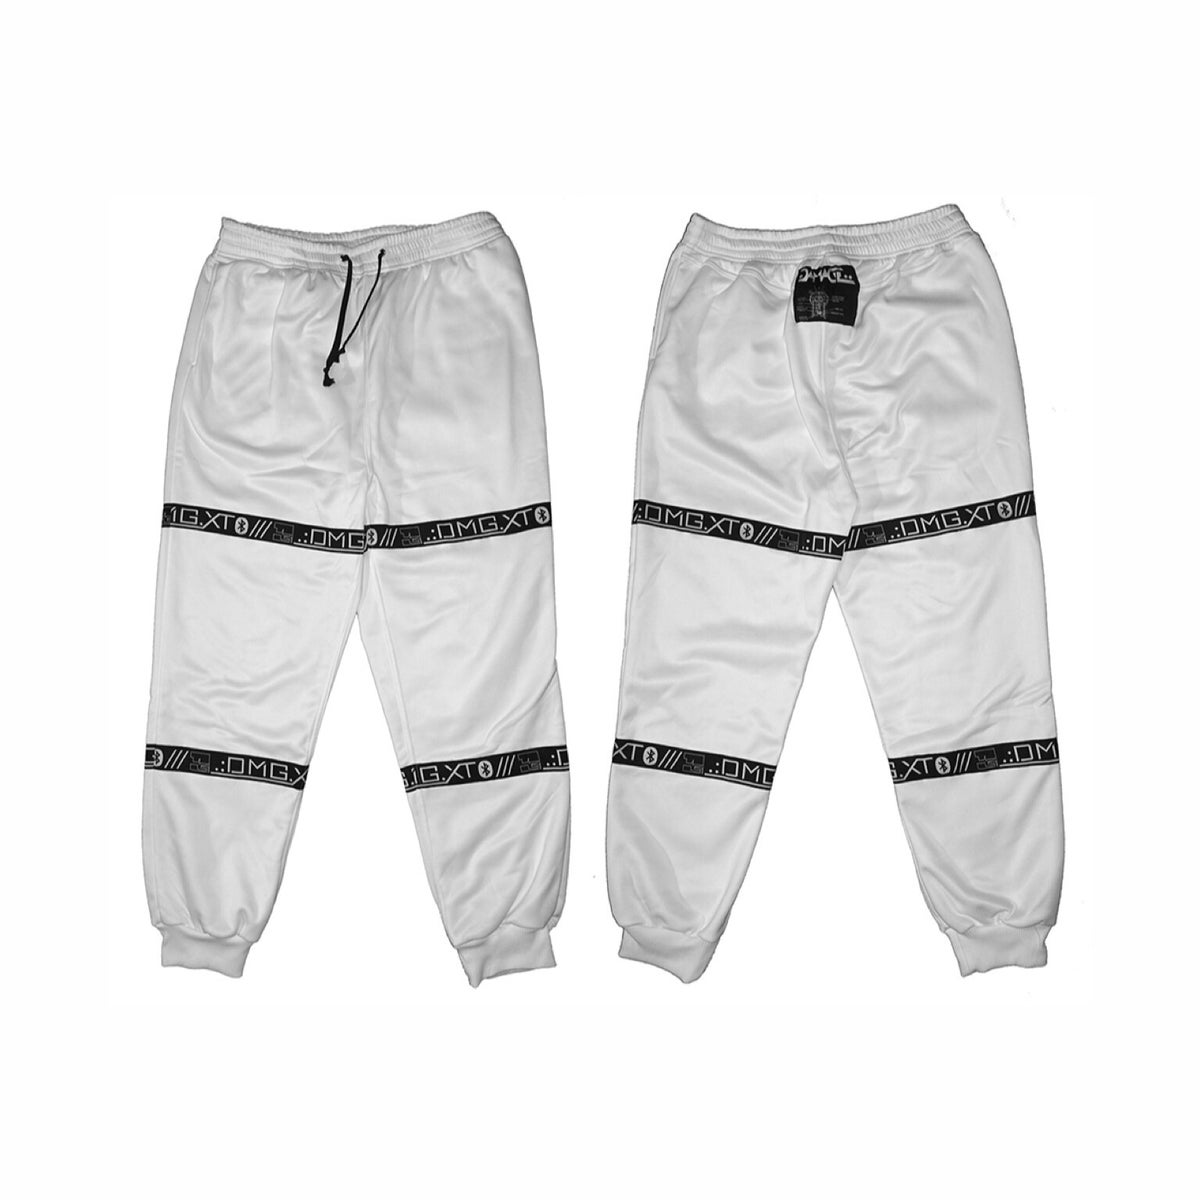 Image of DVMVGE KY$' Basic Strap Sweatpants